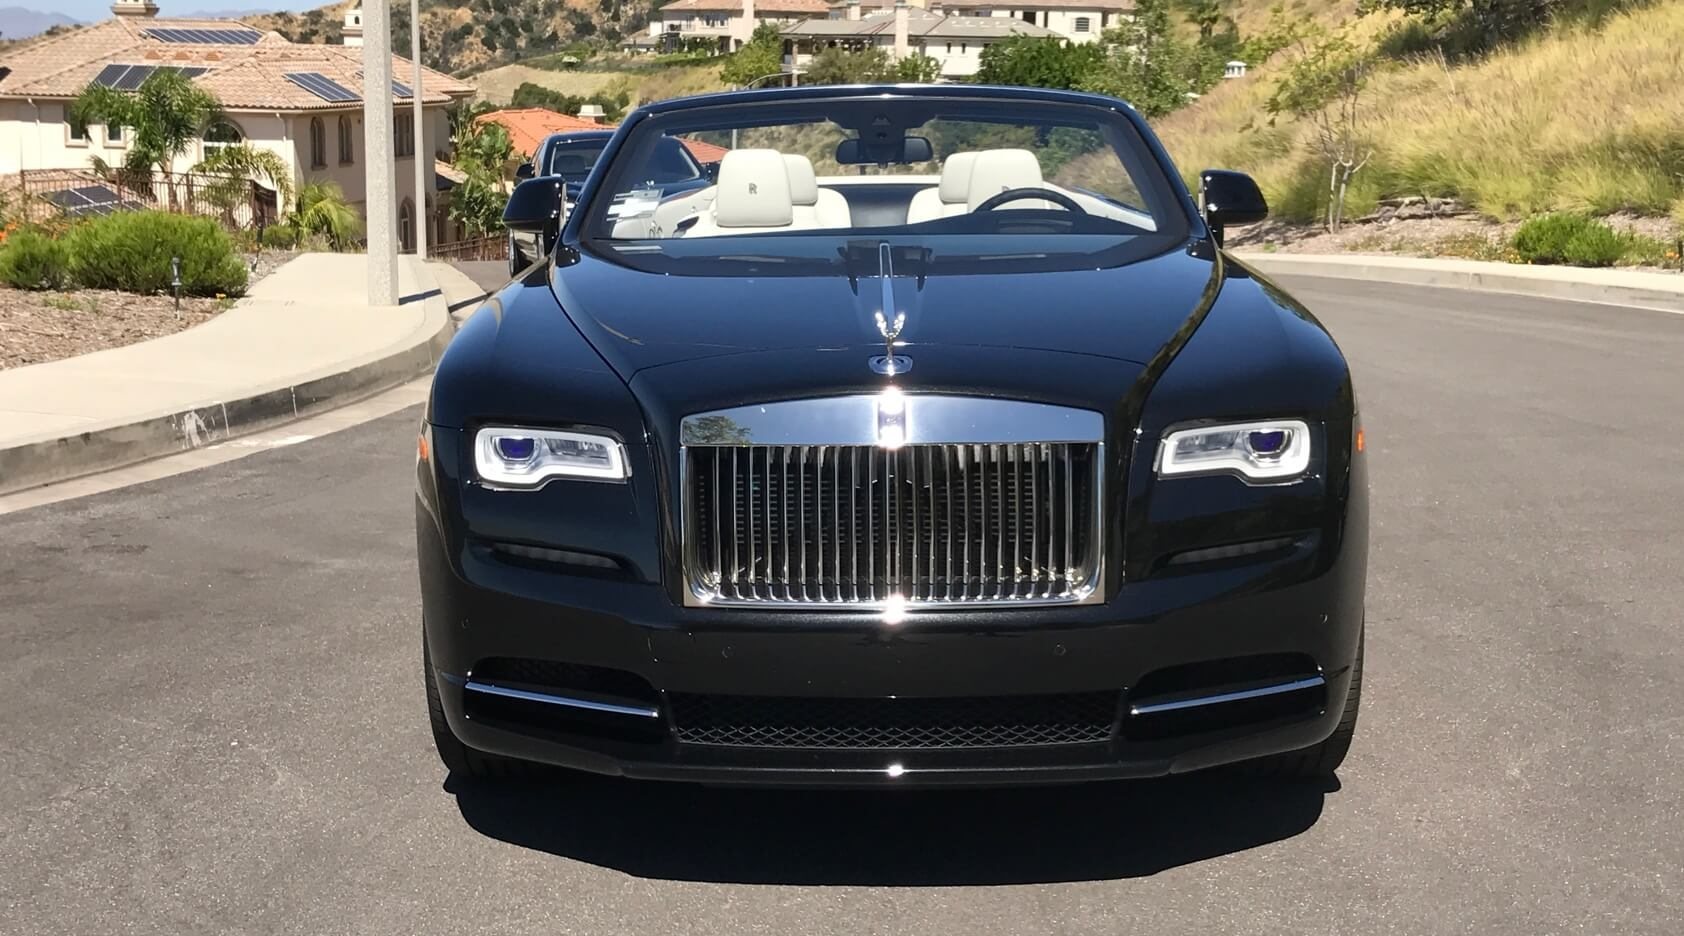 Rolls Royce Dawn Black 2 Door Convertible Exotic Cars